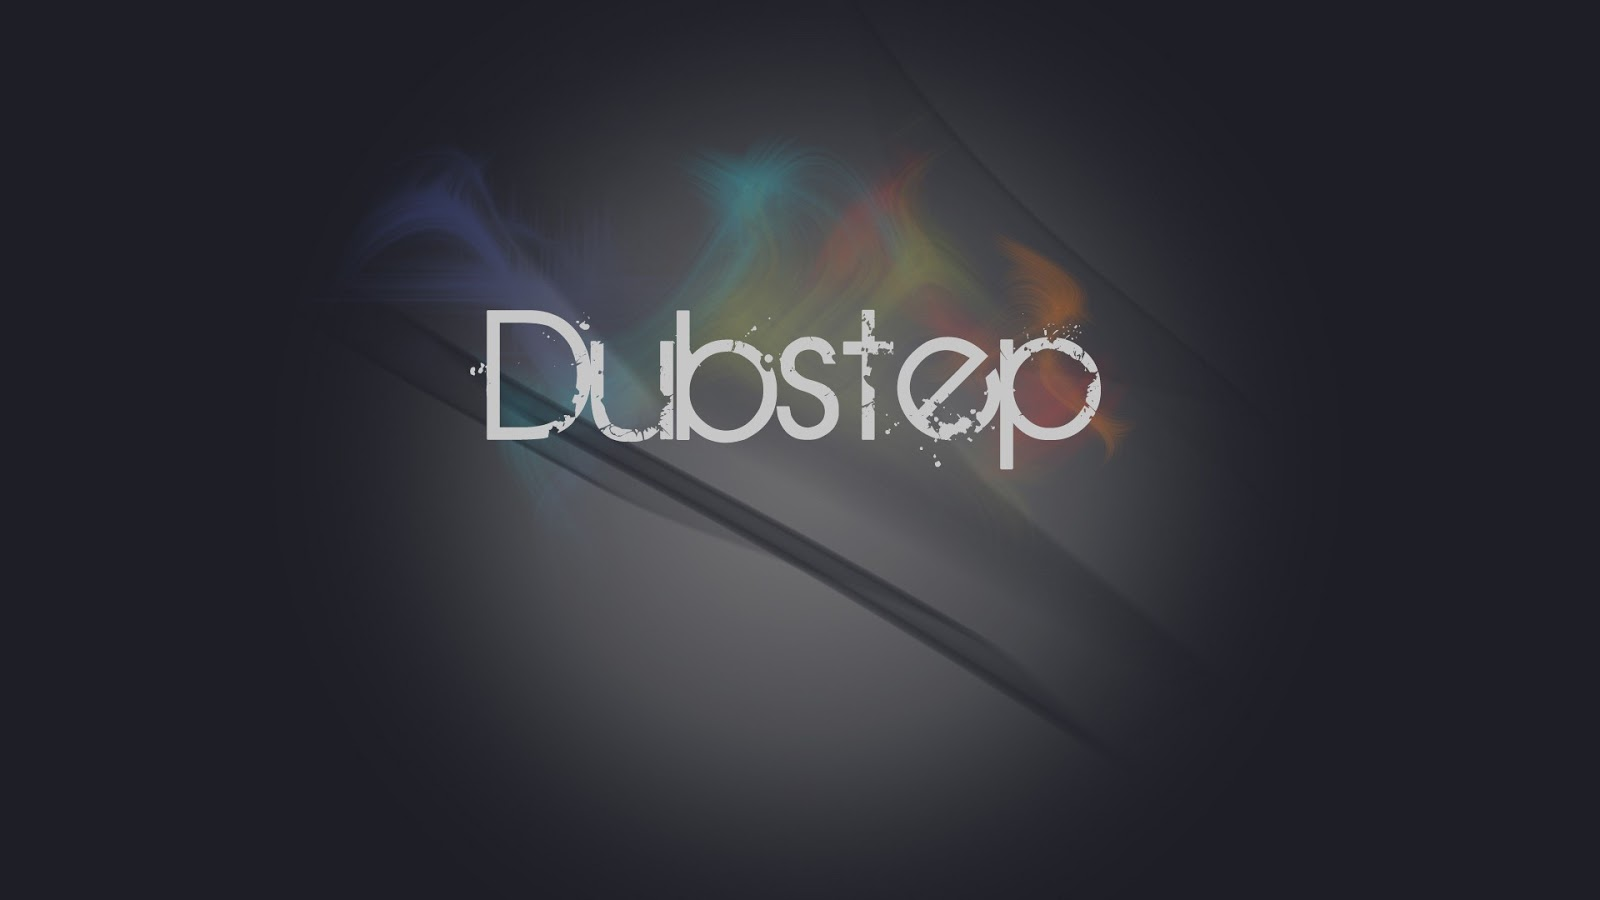 i wub dubstep fs shake dat ass new dubstep wallpapers